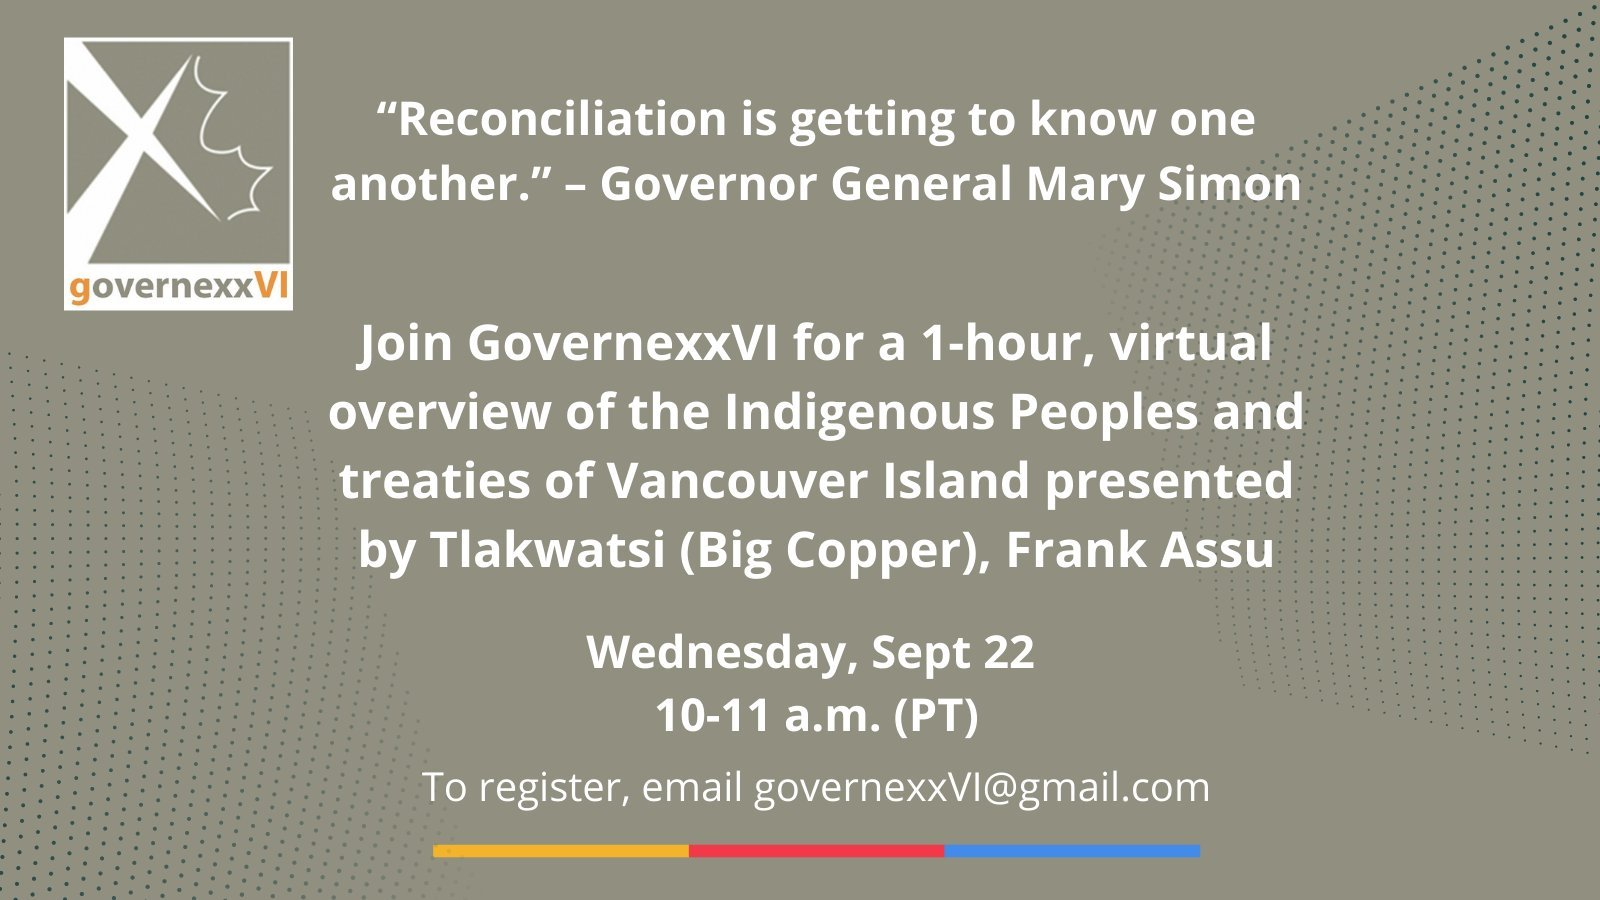 """Poster that reads: """"Reconciliation is getting to know one another."""" - Governor General Mary Simon. Join GovernexxVI for a 1-hour, virtual overview of the Indigenous Peoples and treaties of Vancouver Island presented by Tlakwatsi (Big Cooper), Frank Assu."""